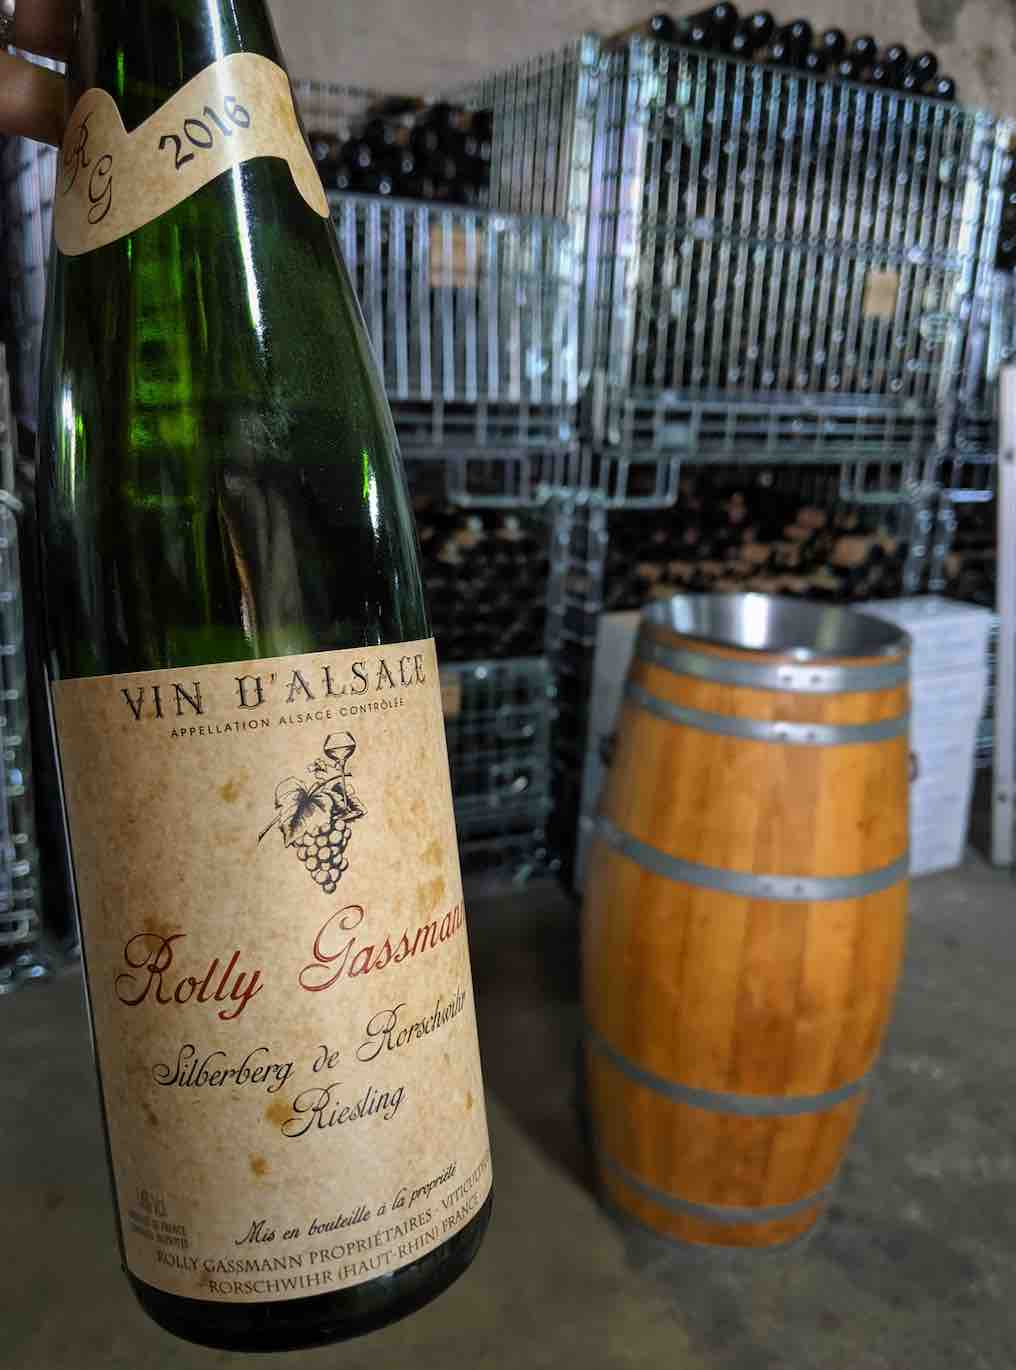 Rolly Gassman - Gourmet Food and Wine in Alsace France